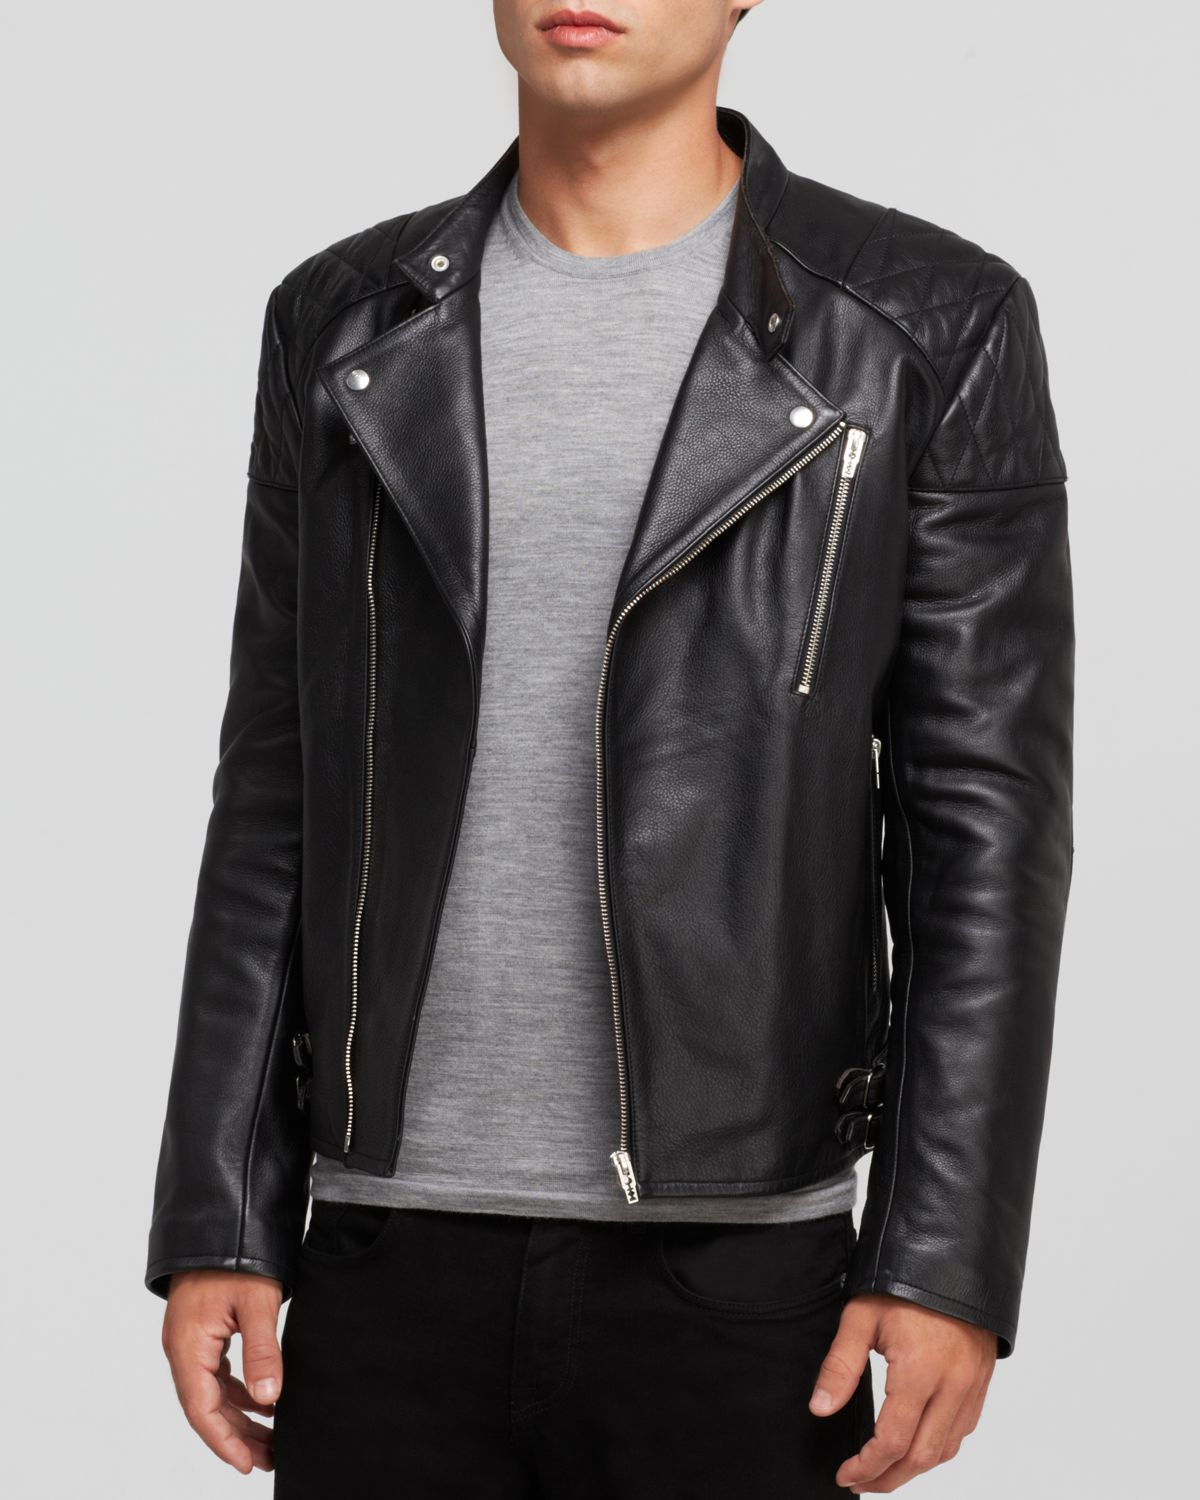 Mcq Leather Biker Jacket in Black for Men | Lyst